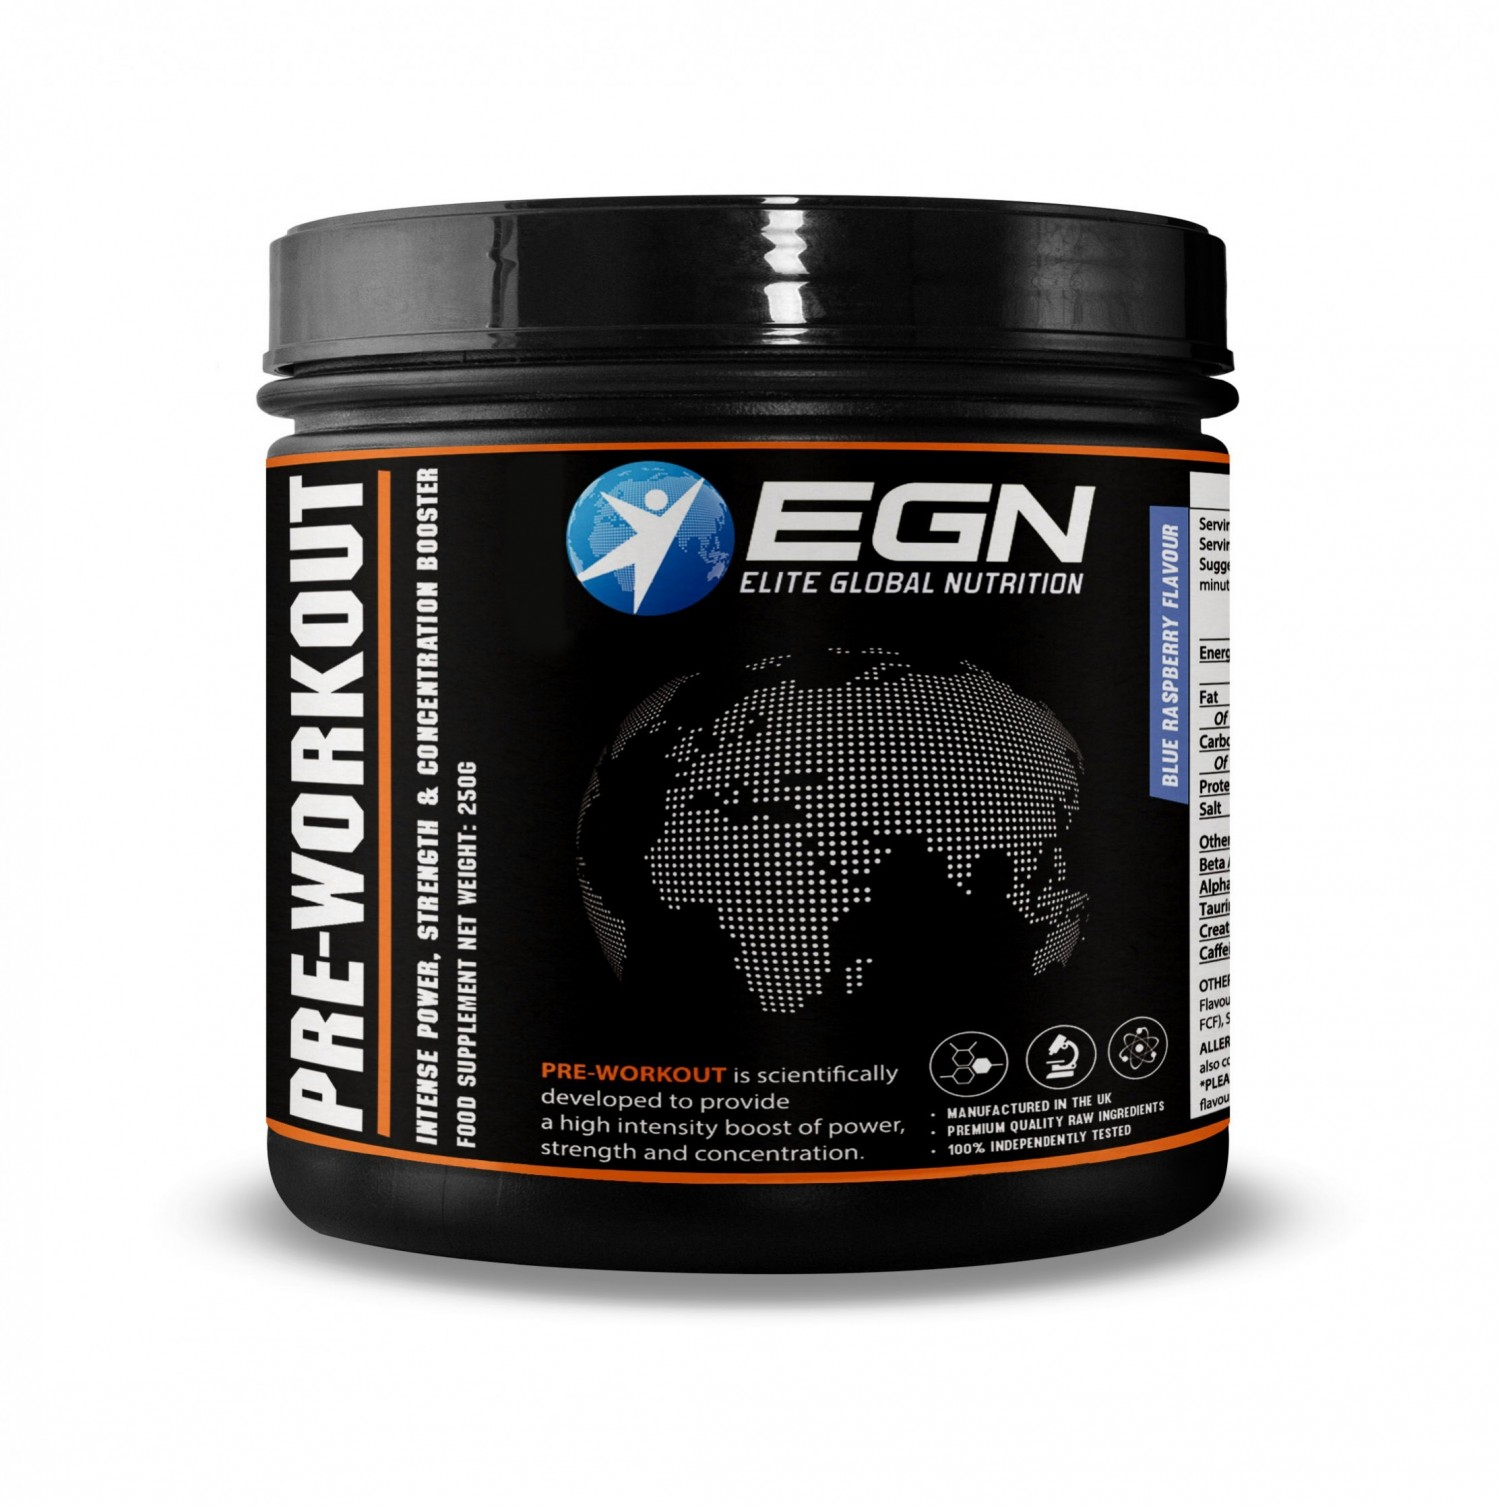 Click to Purchase Pre-Workout